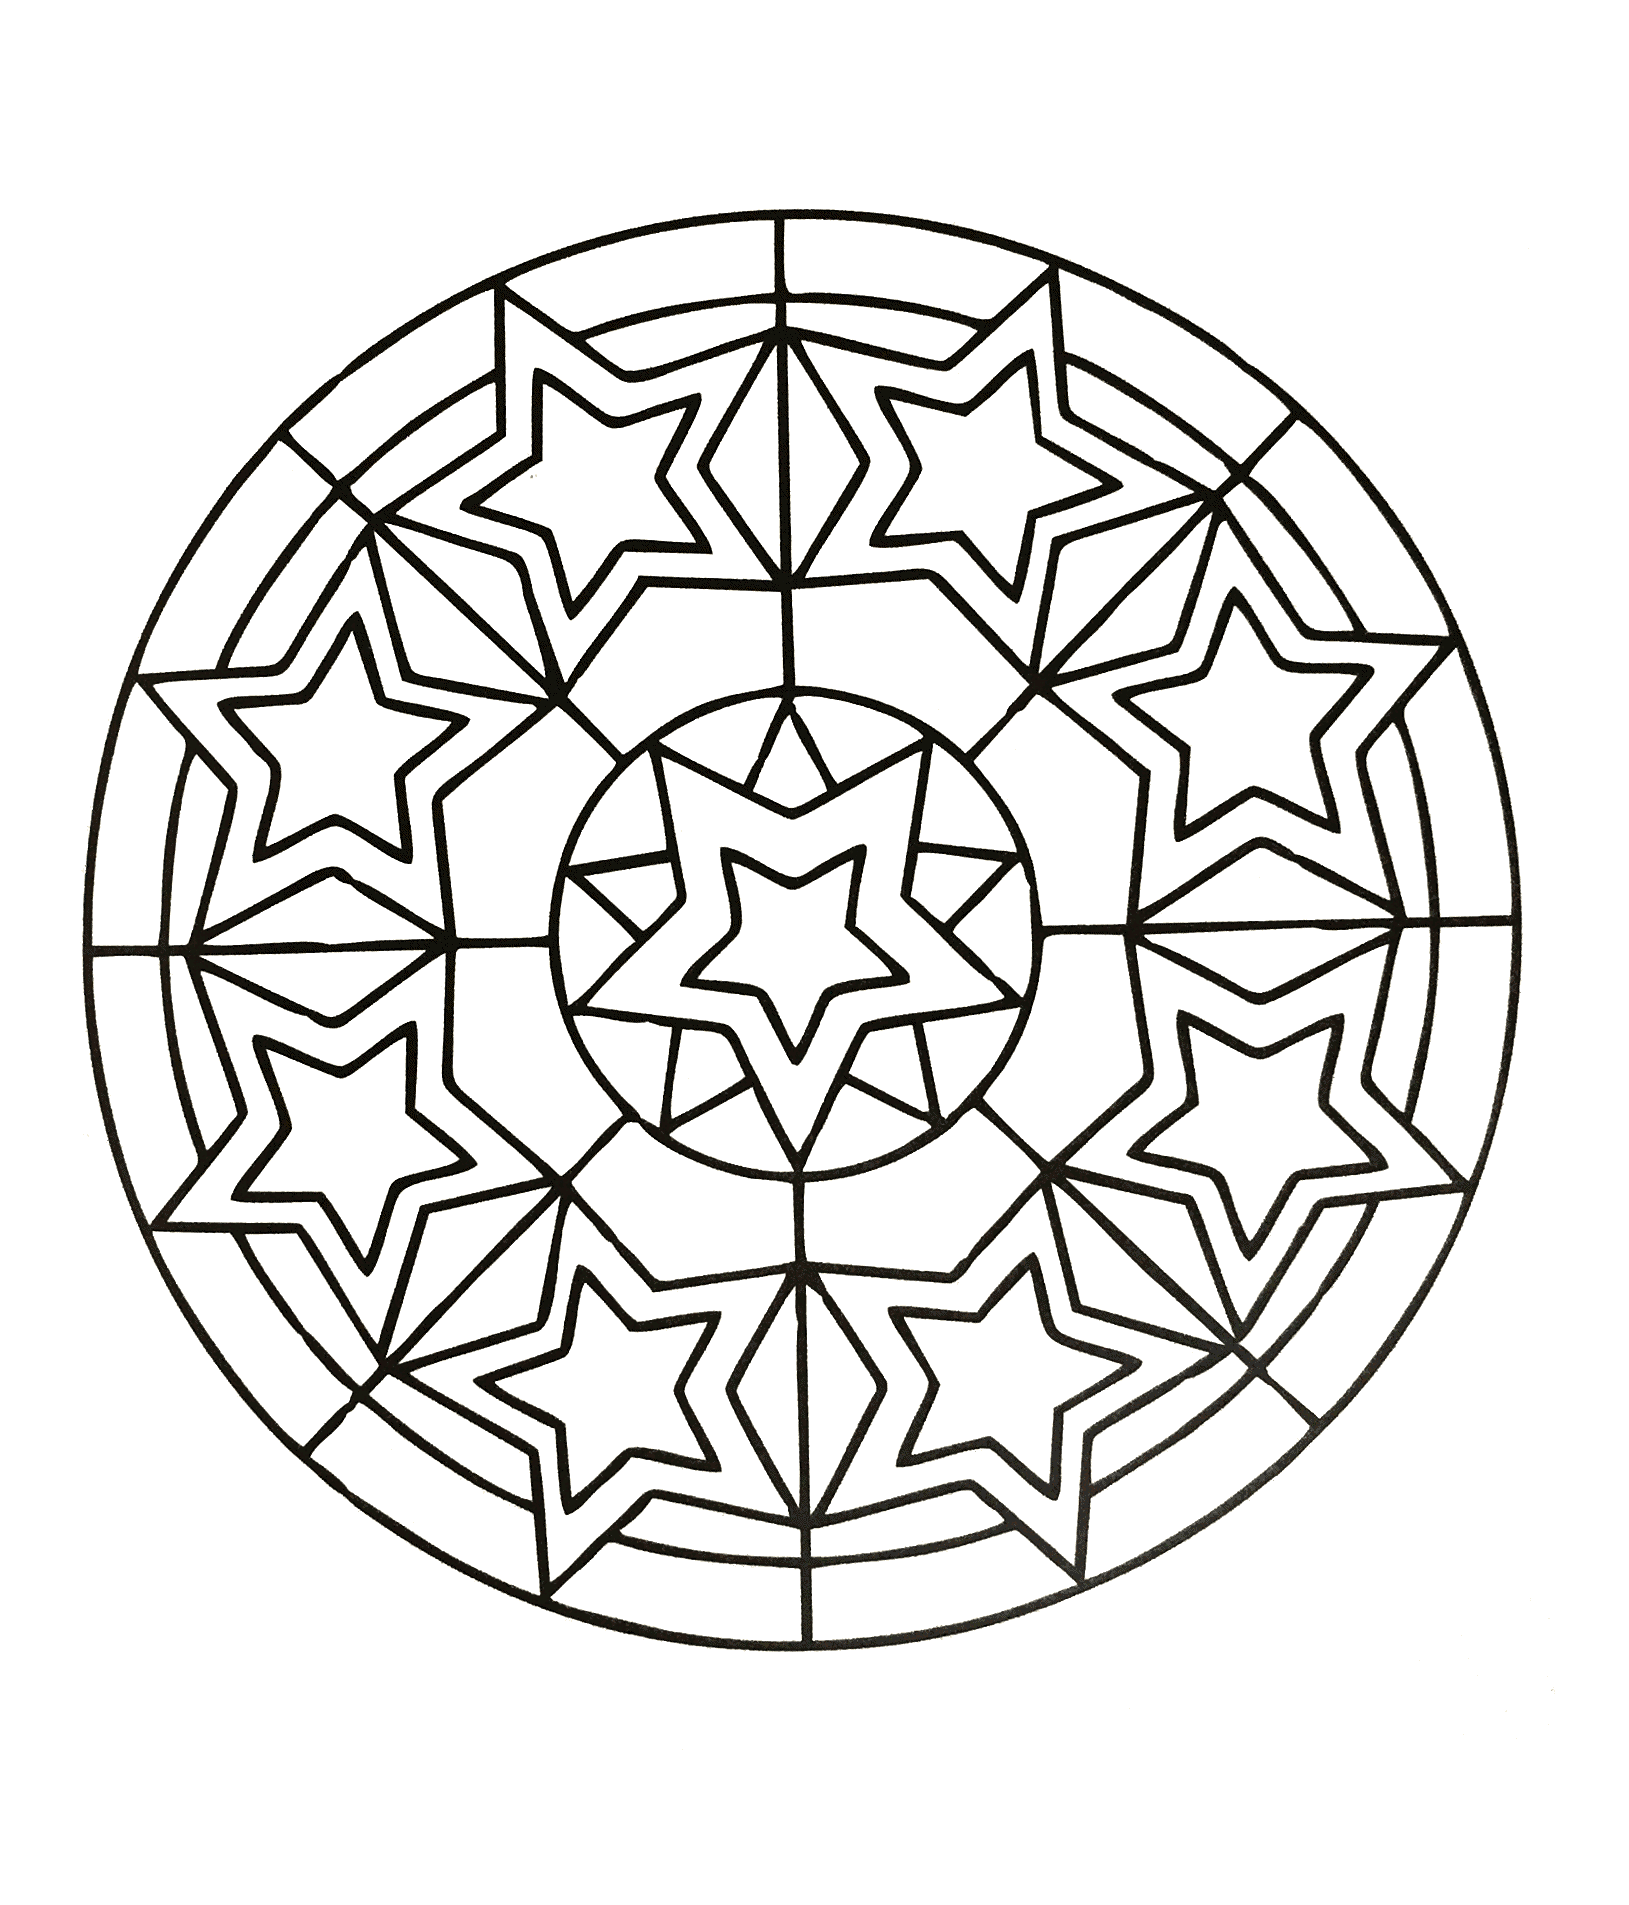 Jewish mandala coloring pages - Mandalas Online Coloring Pages Printable Coloring Book For Kids 72